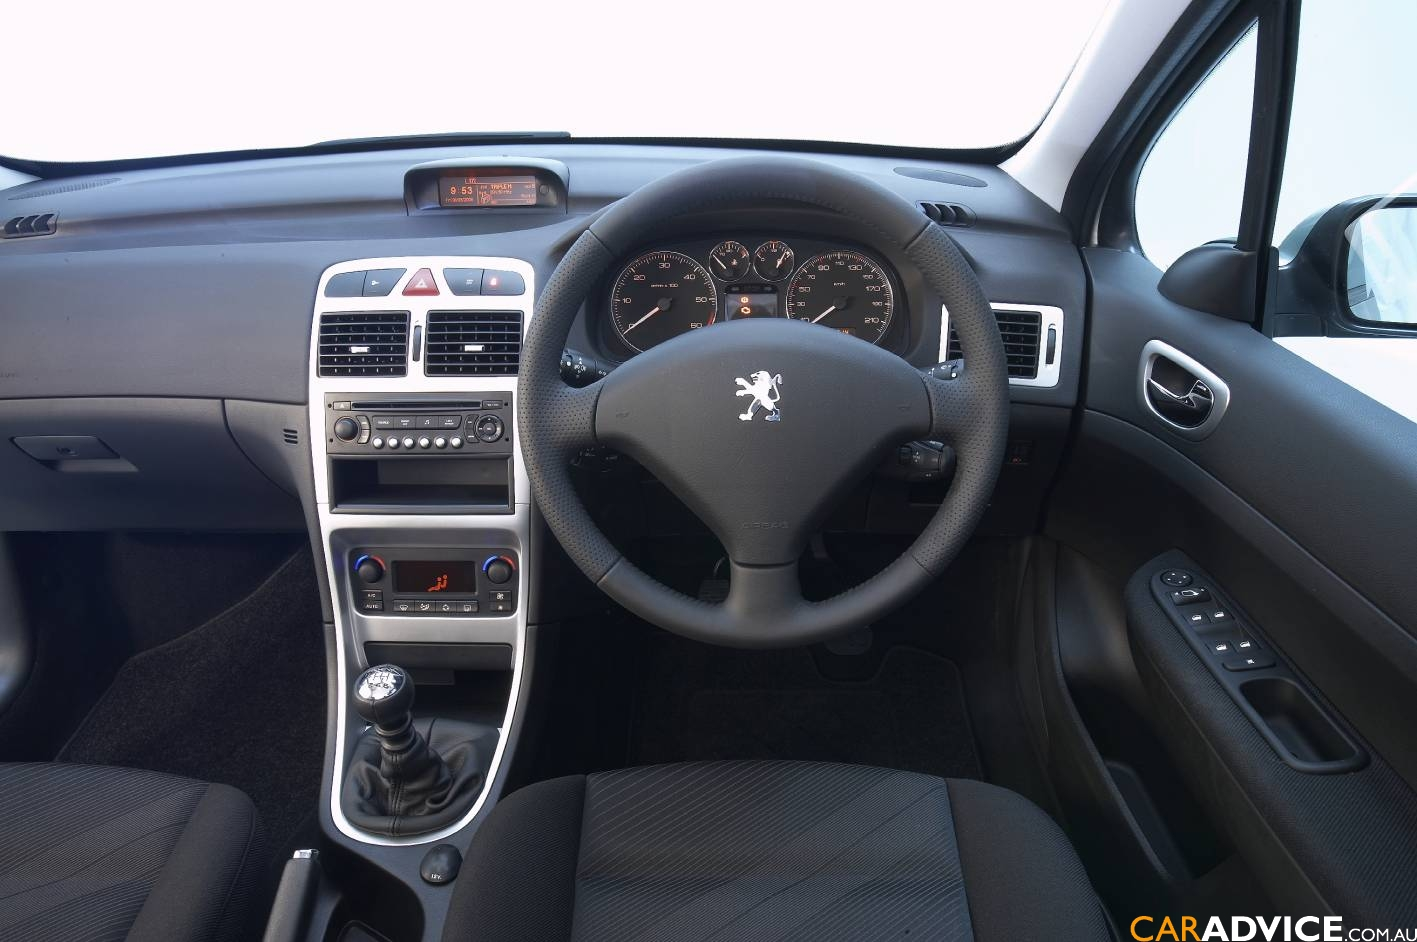 Peugeot 307 review and photos for Peugeot 107 interior